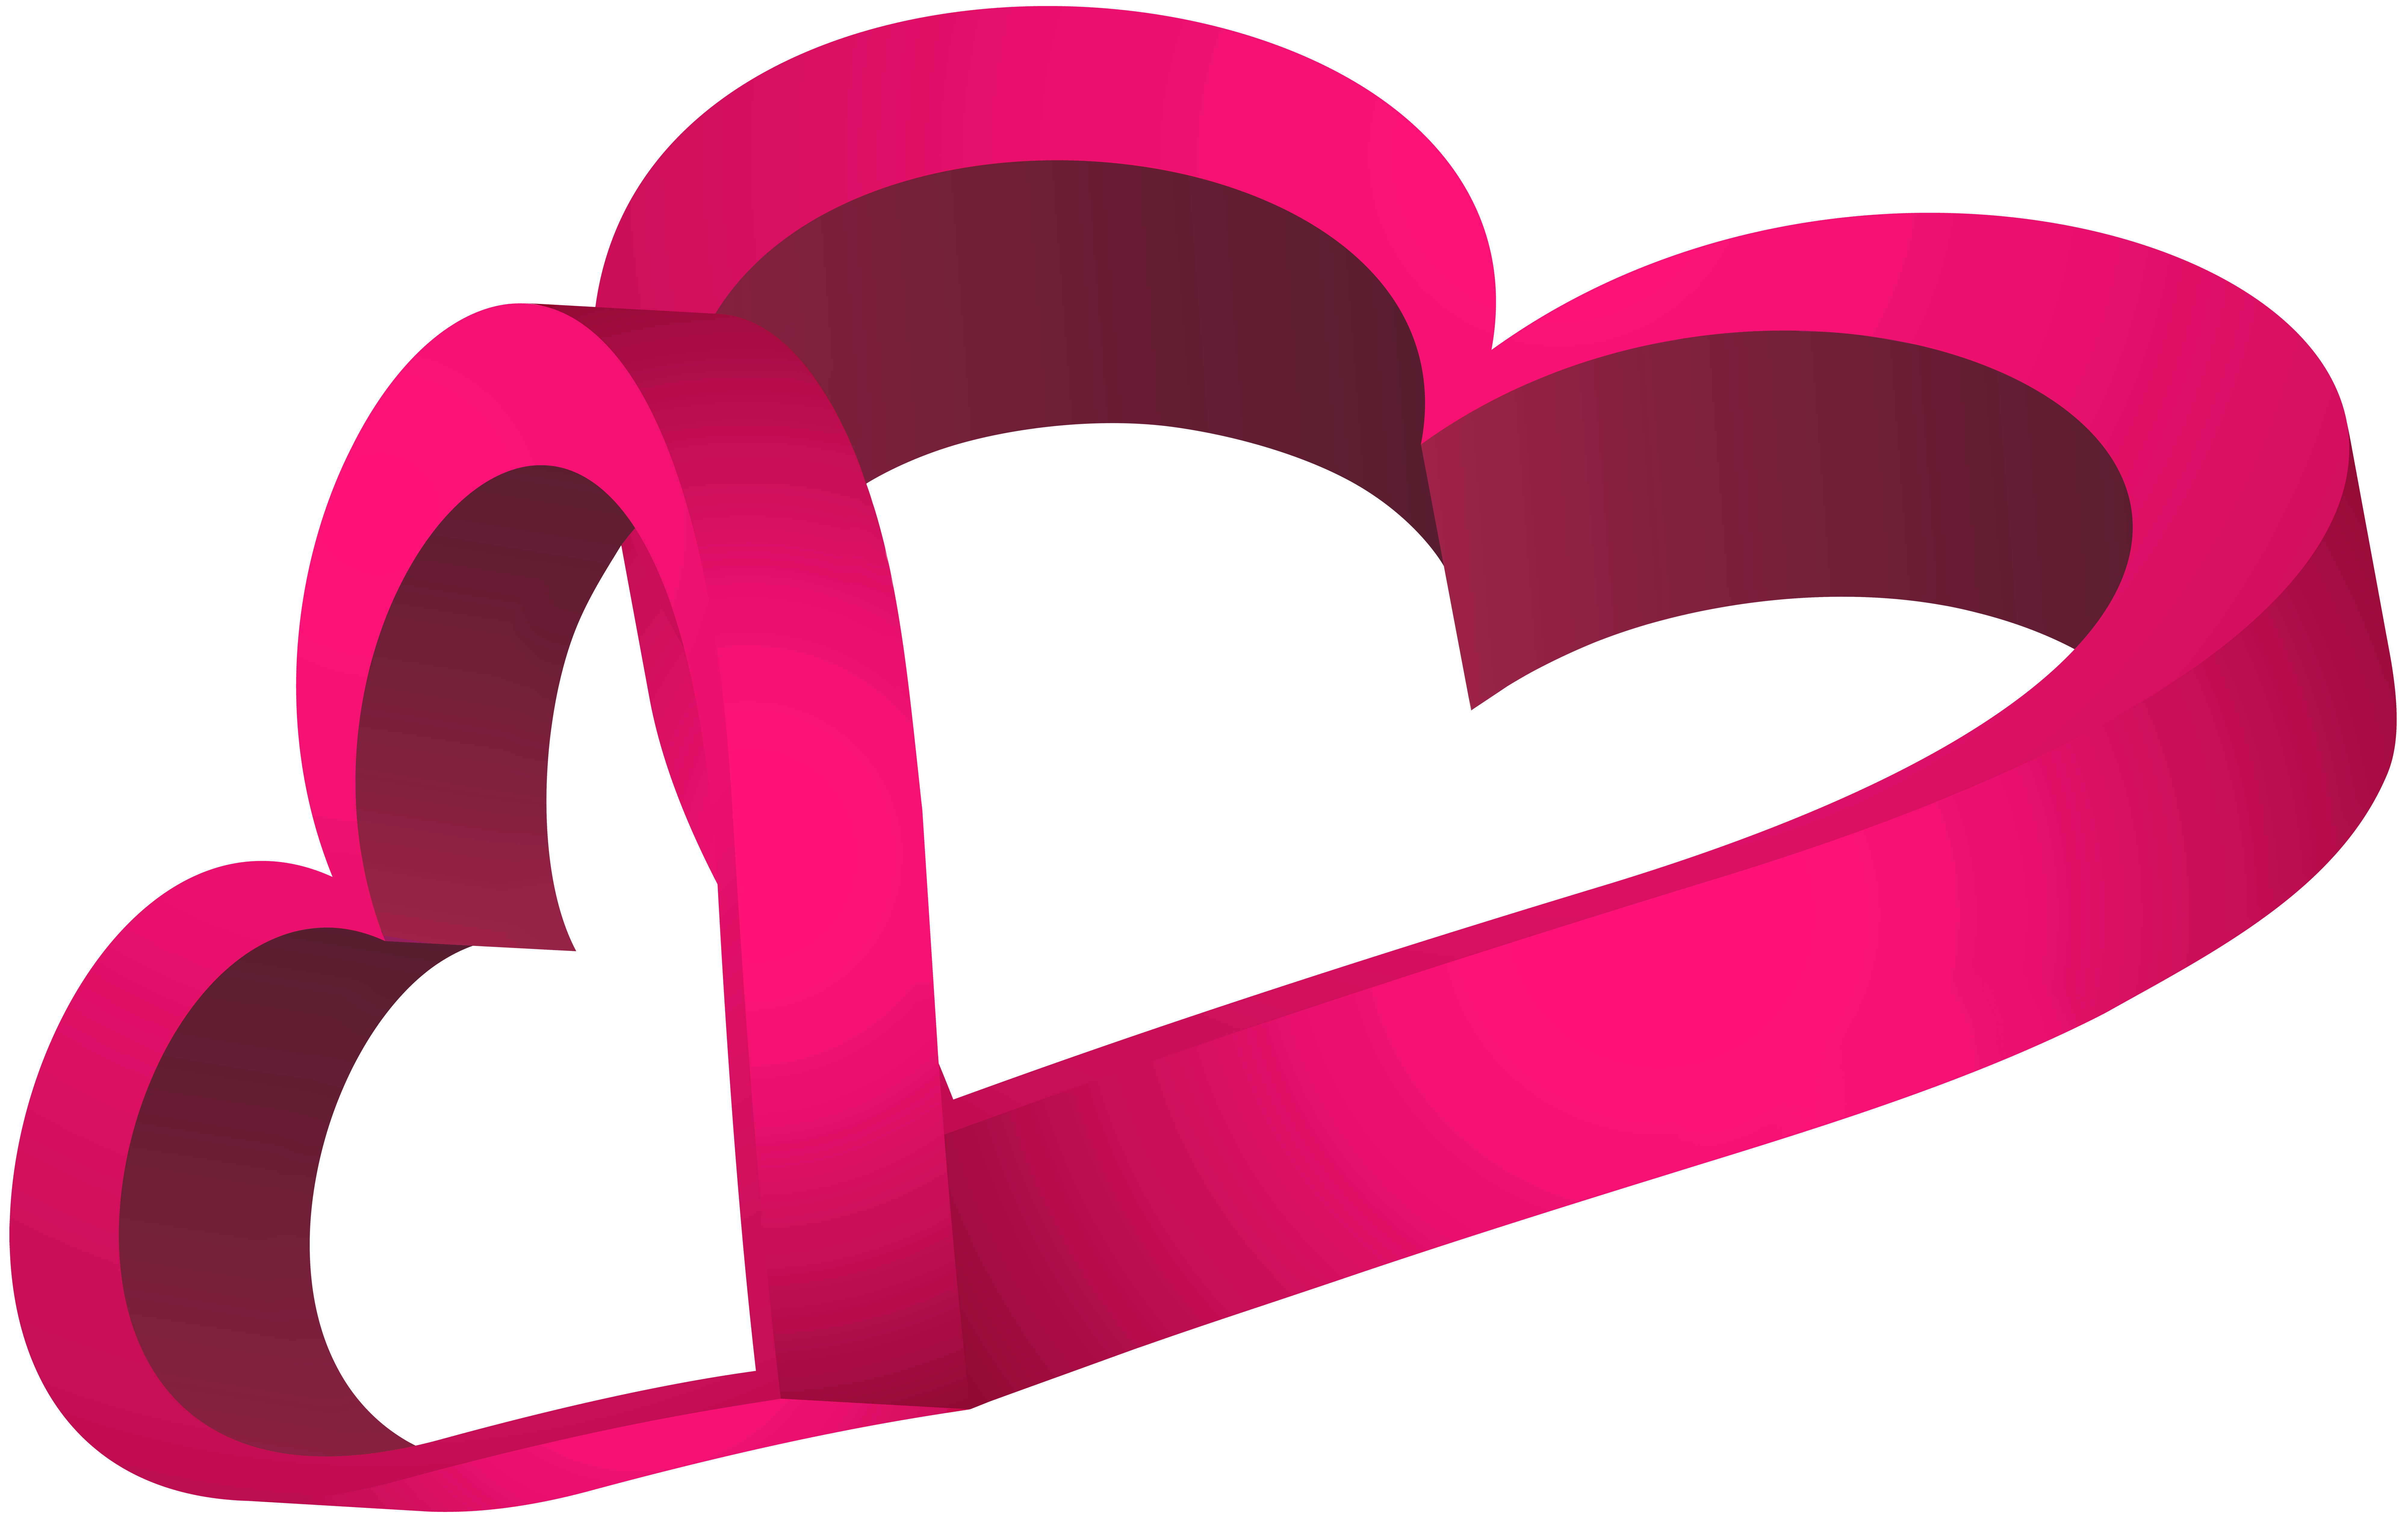 Clipart hearts halloween. Two pink png clip